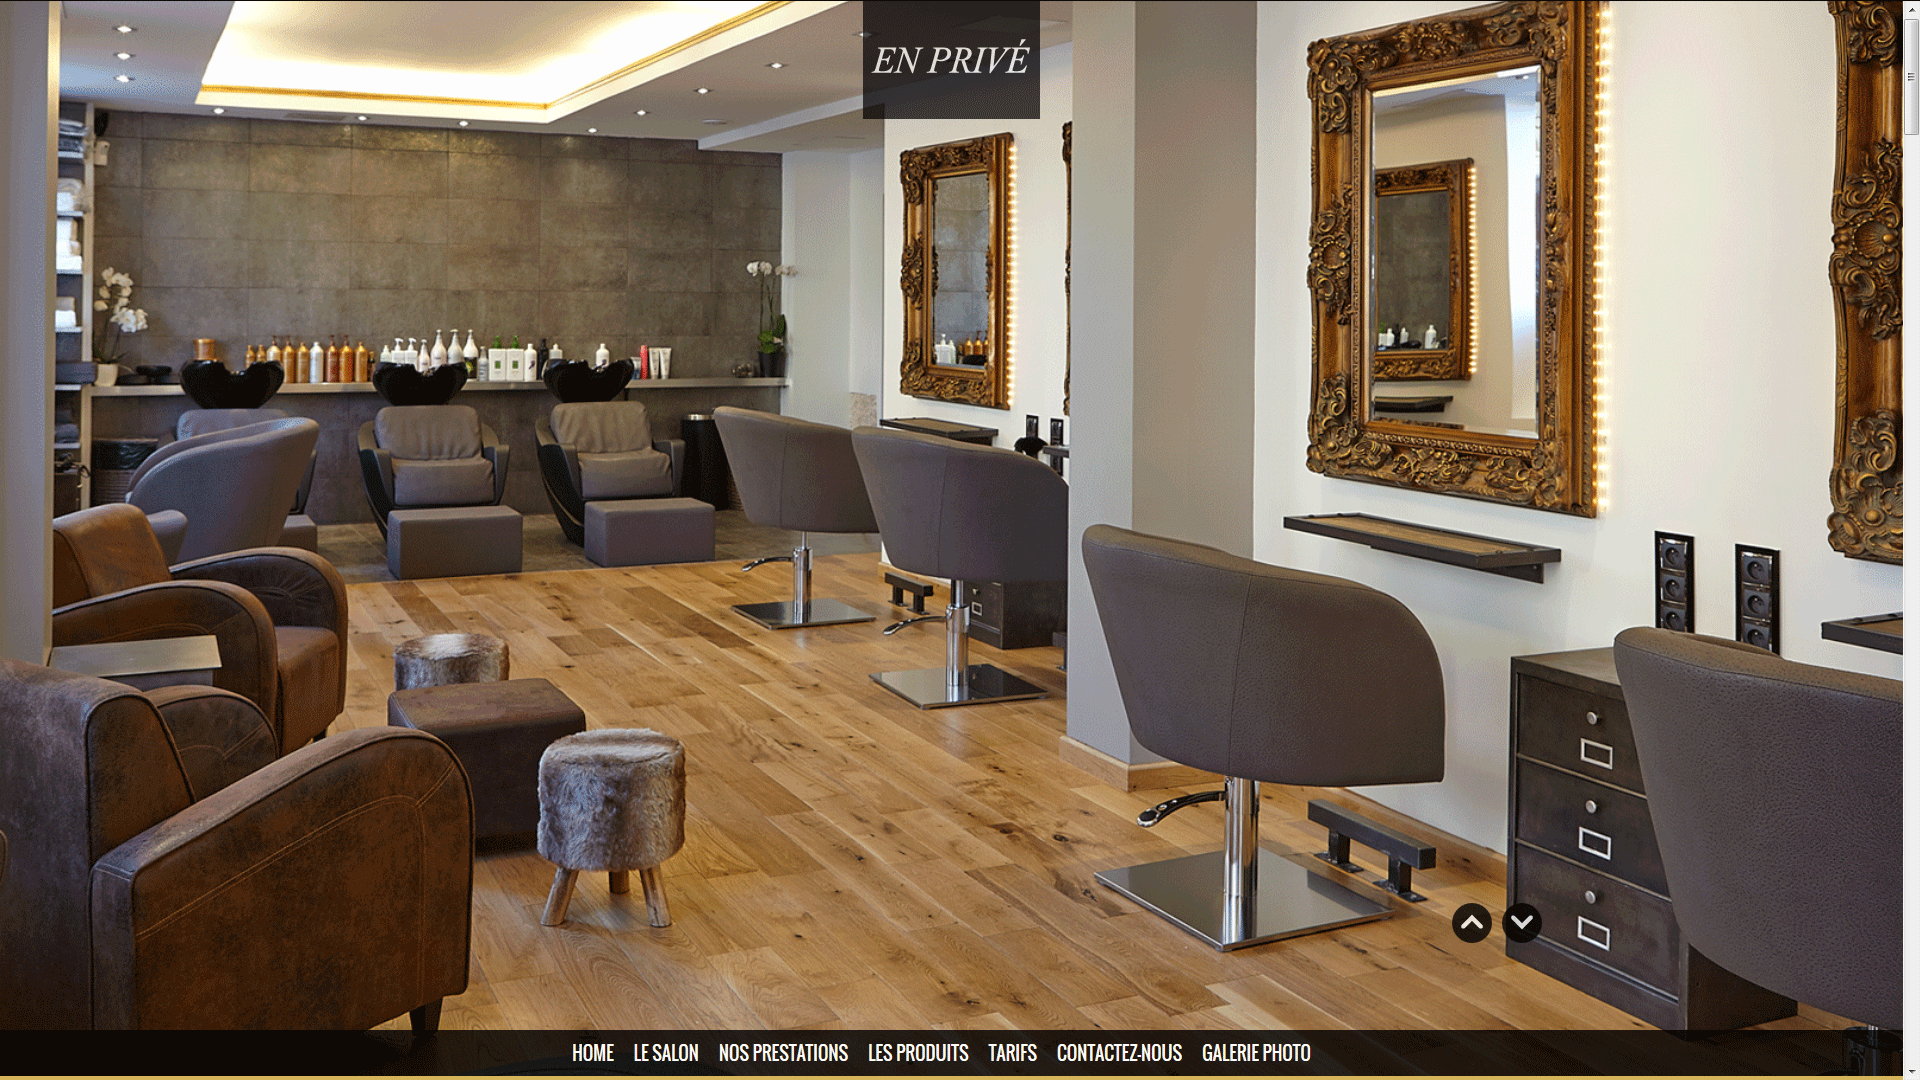 Salon de coiffure deco joy studio design gallery best - Mobilier salon de coiffure d occasion ...